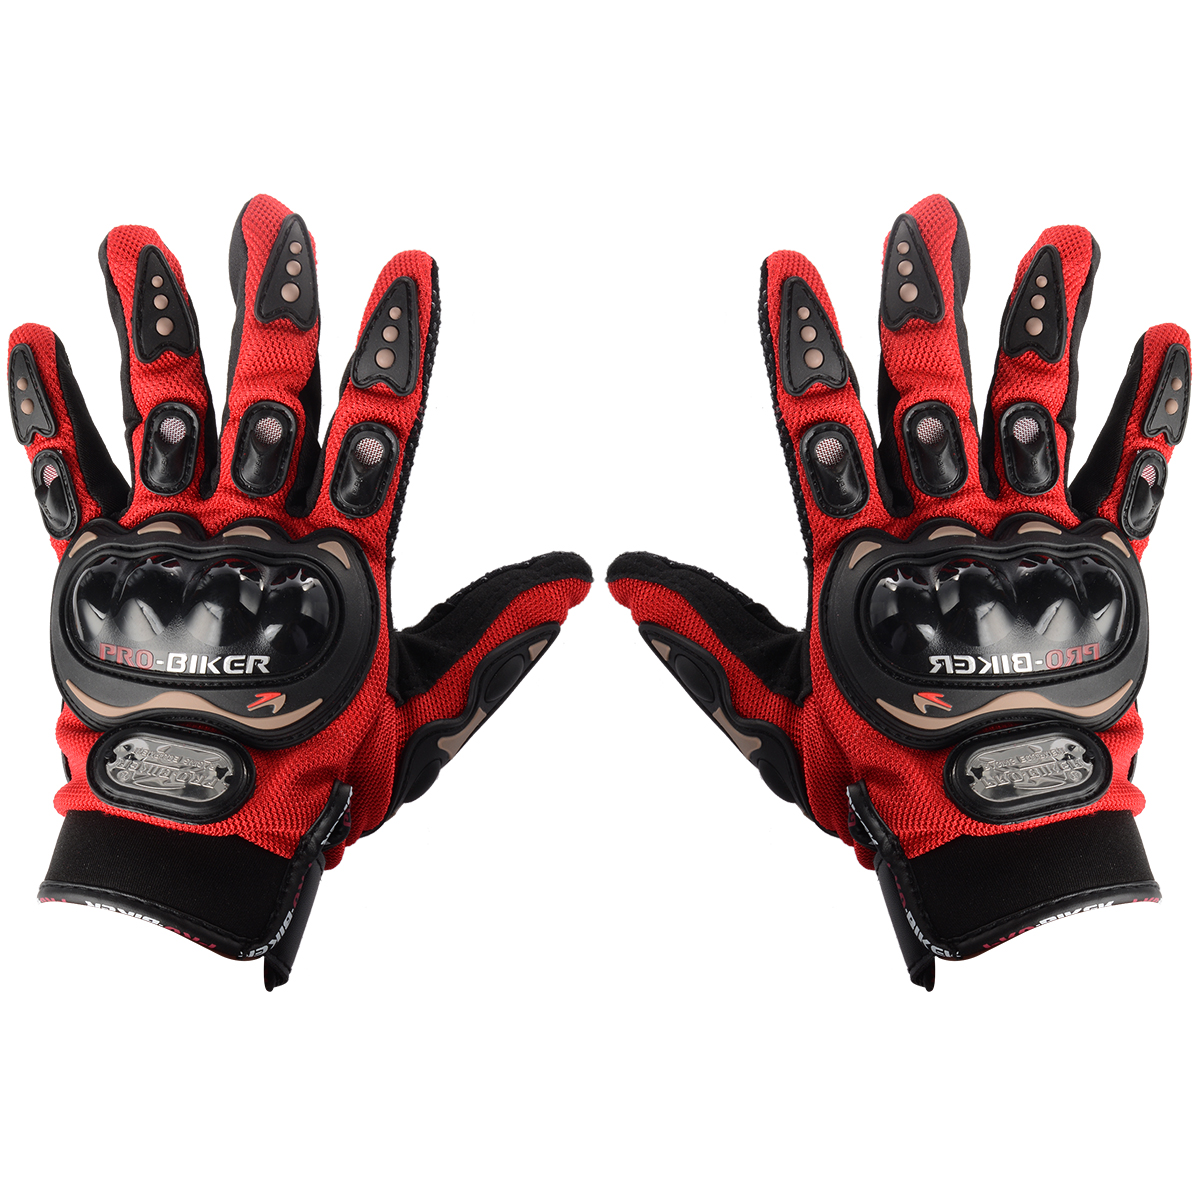 gants de moto doigt complet protection moto cross v lo sport noir rouge bleu ebay. Black Bedroom Furniture Sets. Home Design Ideas